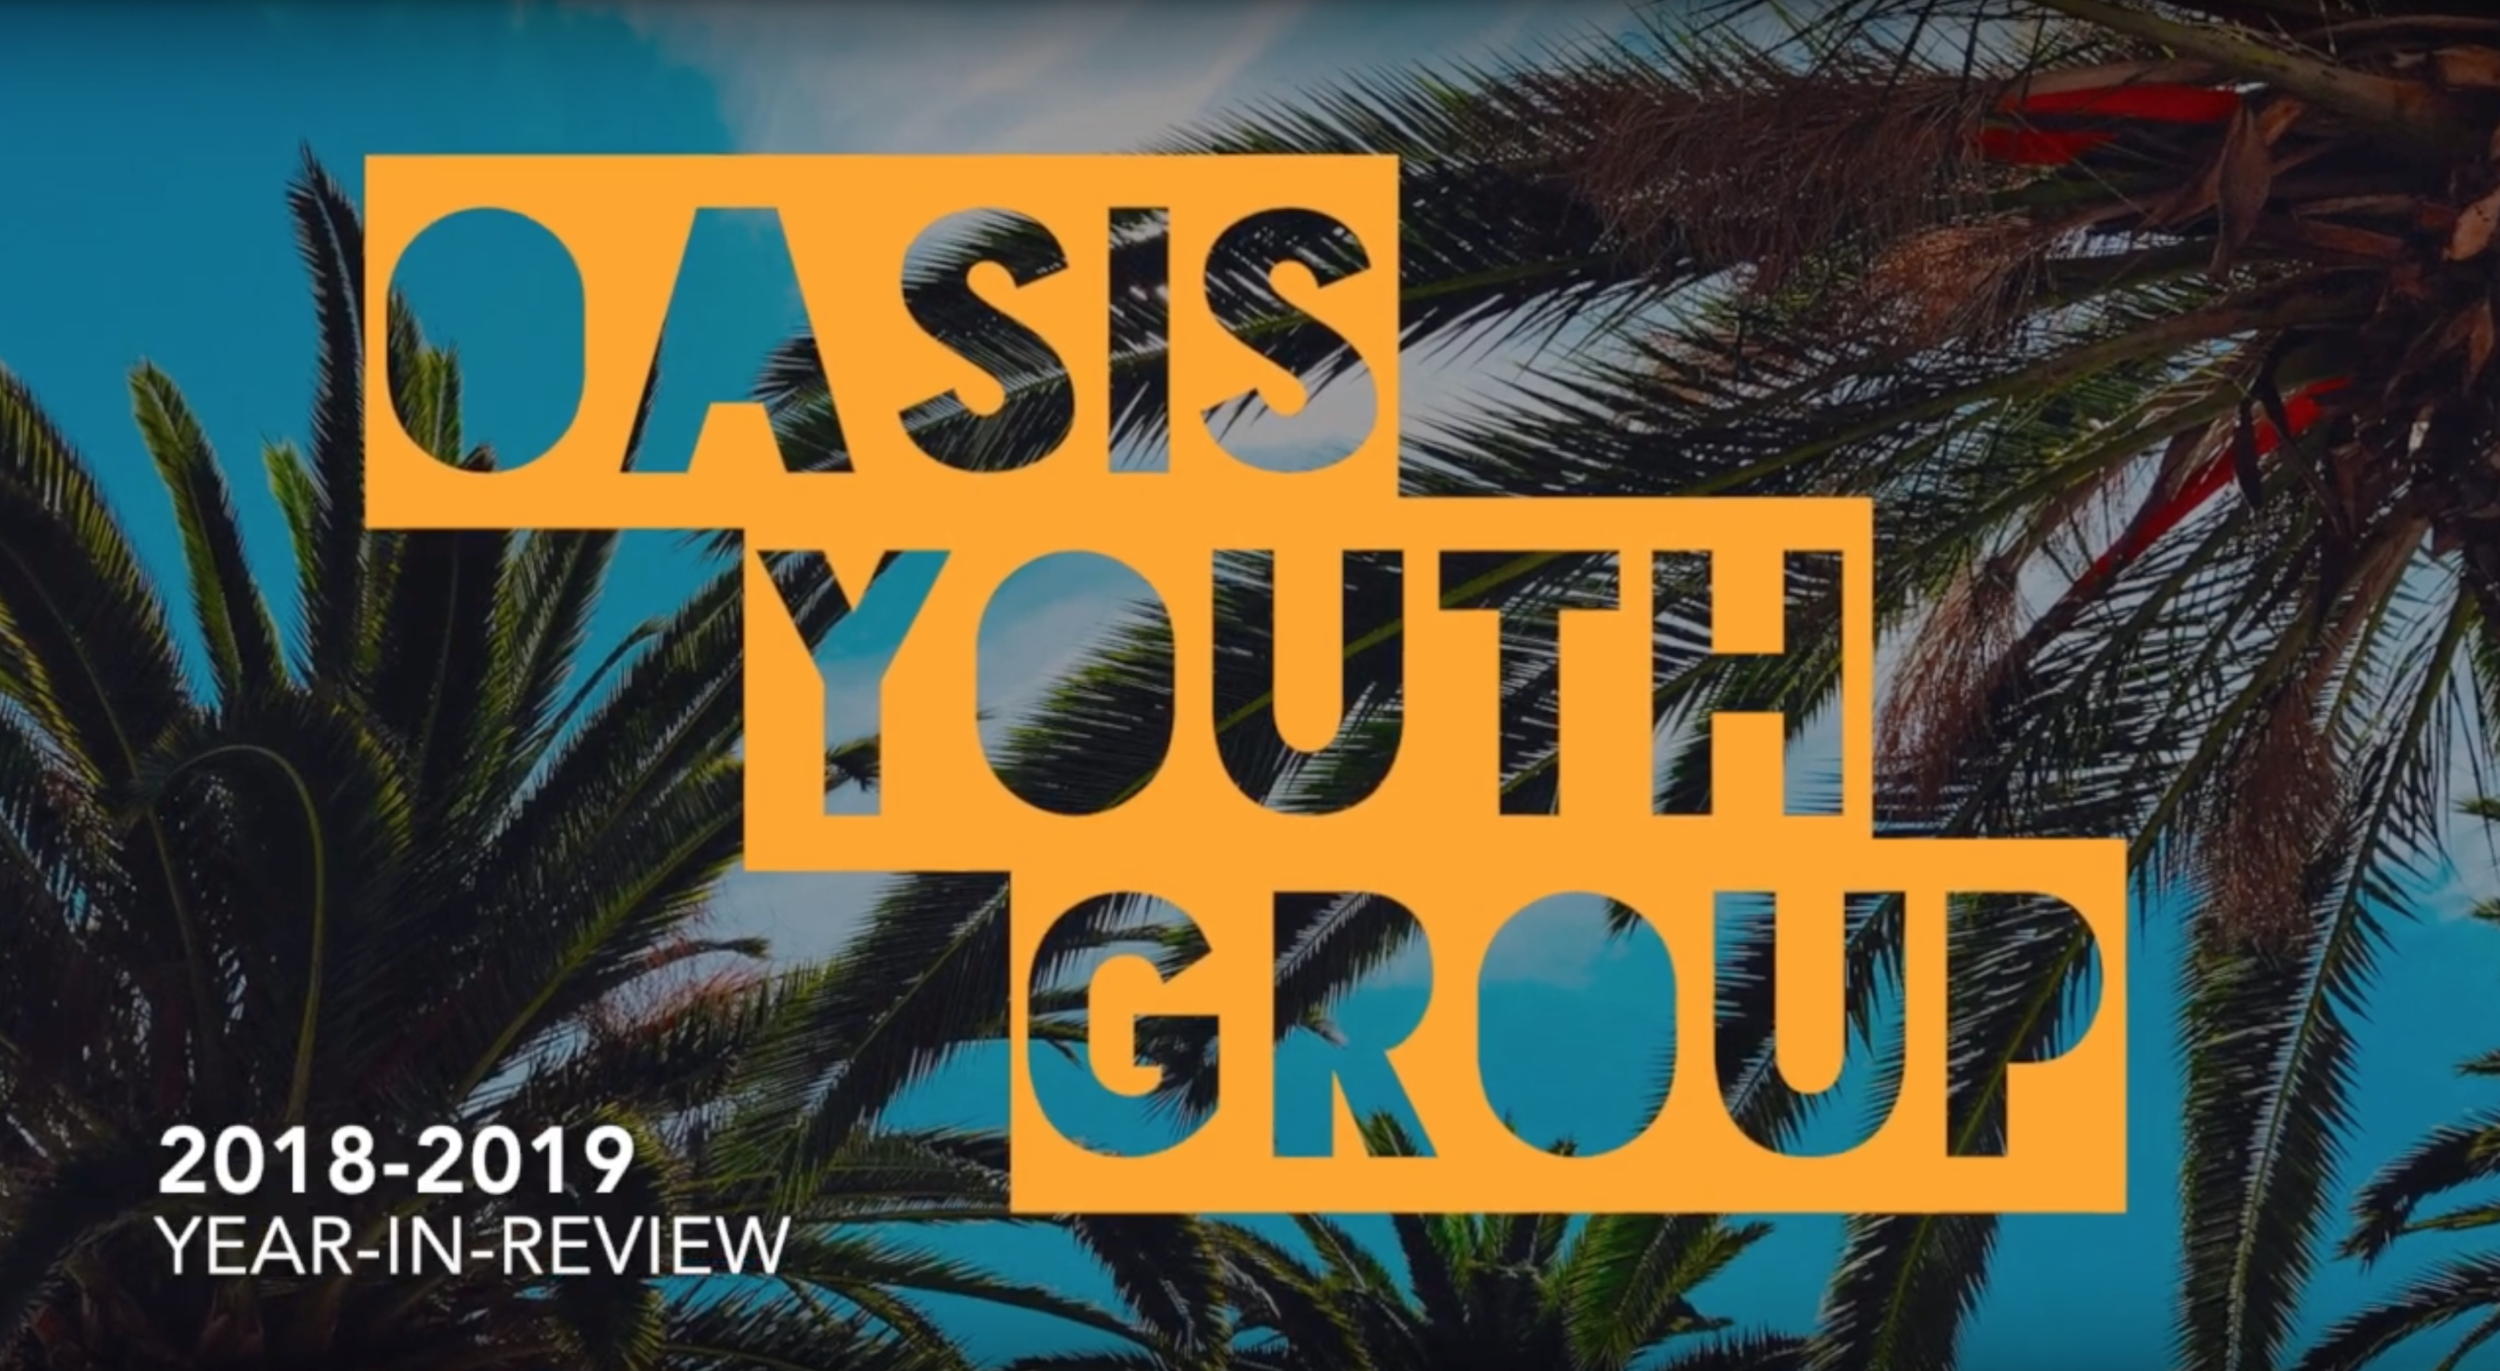 CLICK ABOVE TO SEE THE OASIS YEAR-IN-REVIEW VIDEO!